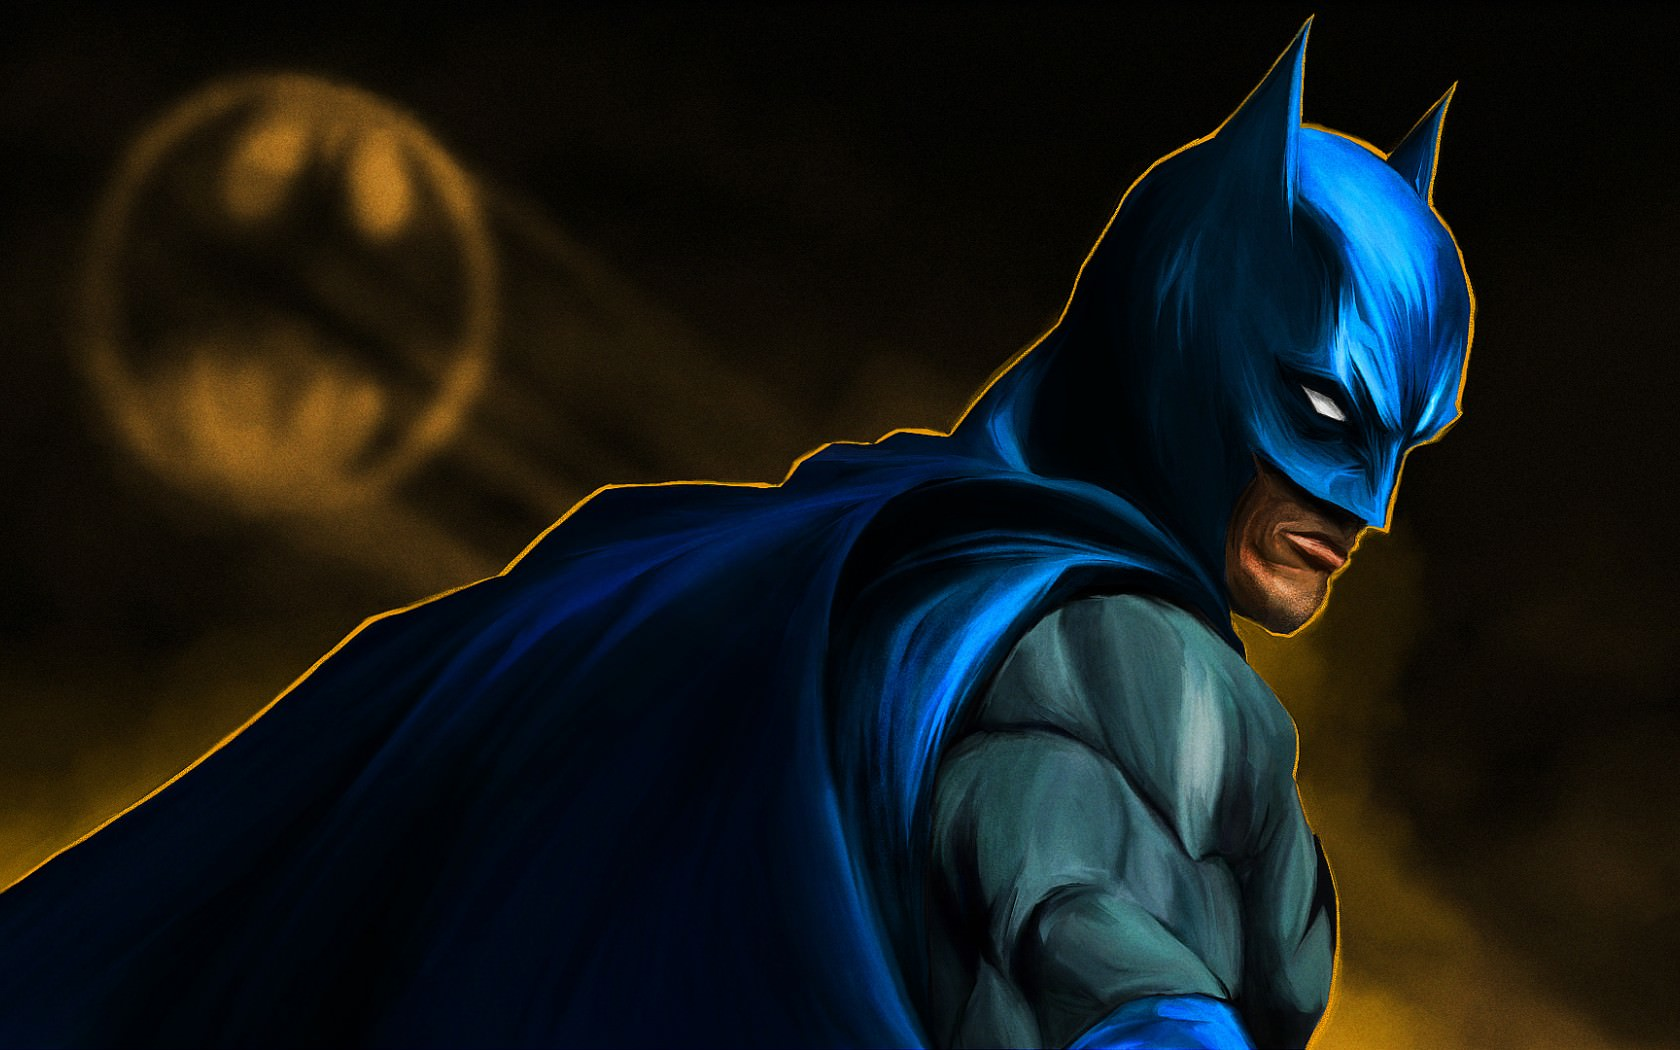 Crazy Batman Wallpaper